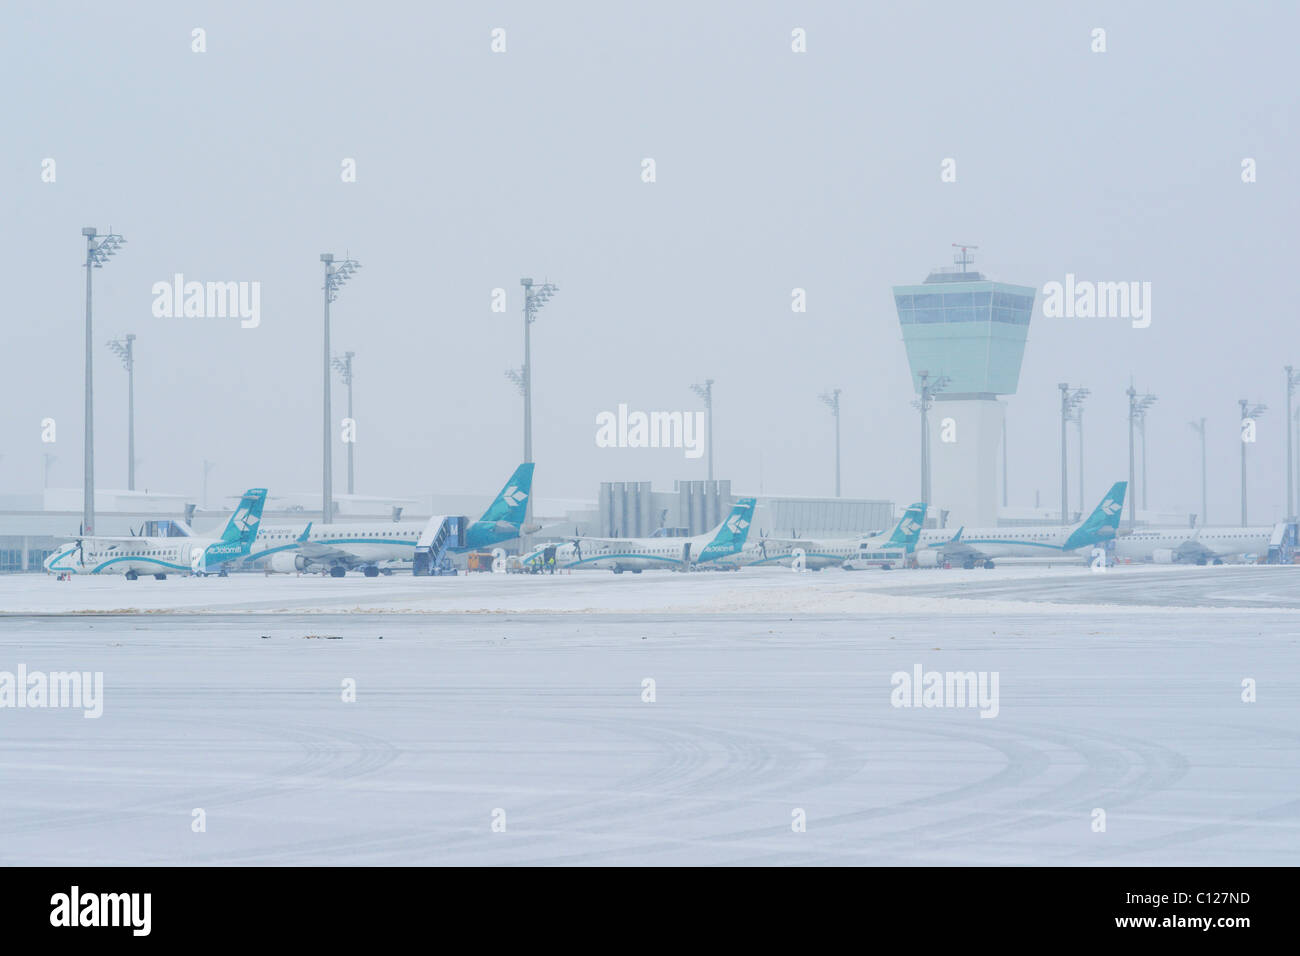 Snow, winter, Air Dolomiti airplanes, control tower, east apron, Munich Airport, MUC, Bavaria, Germany, Europe - Stock Image